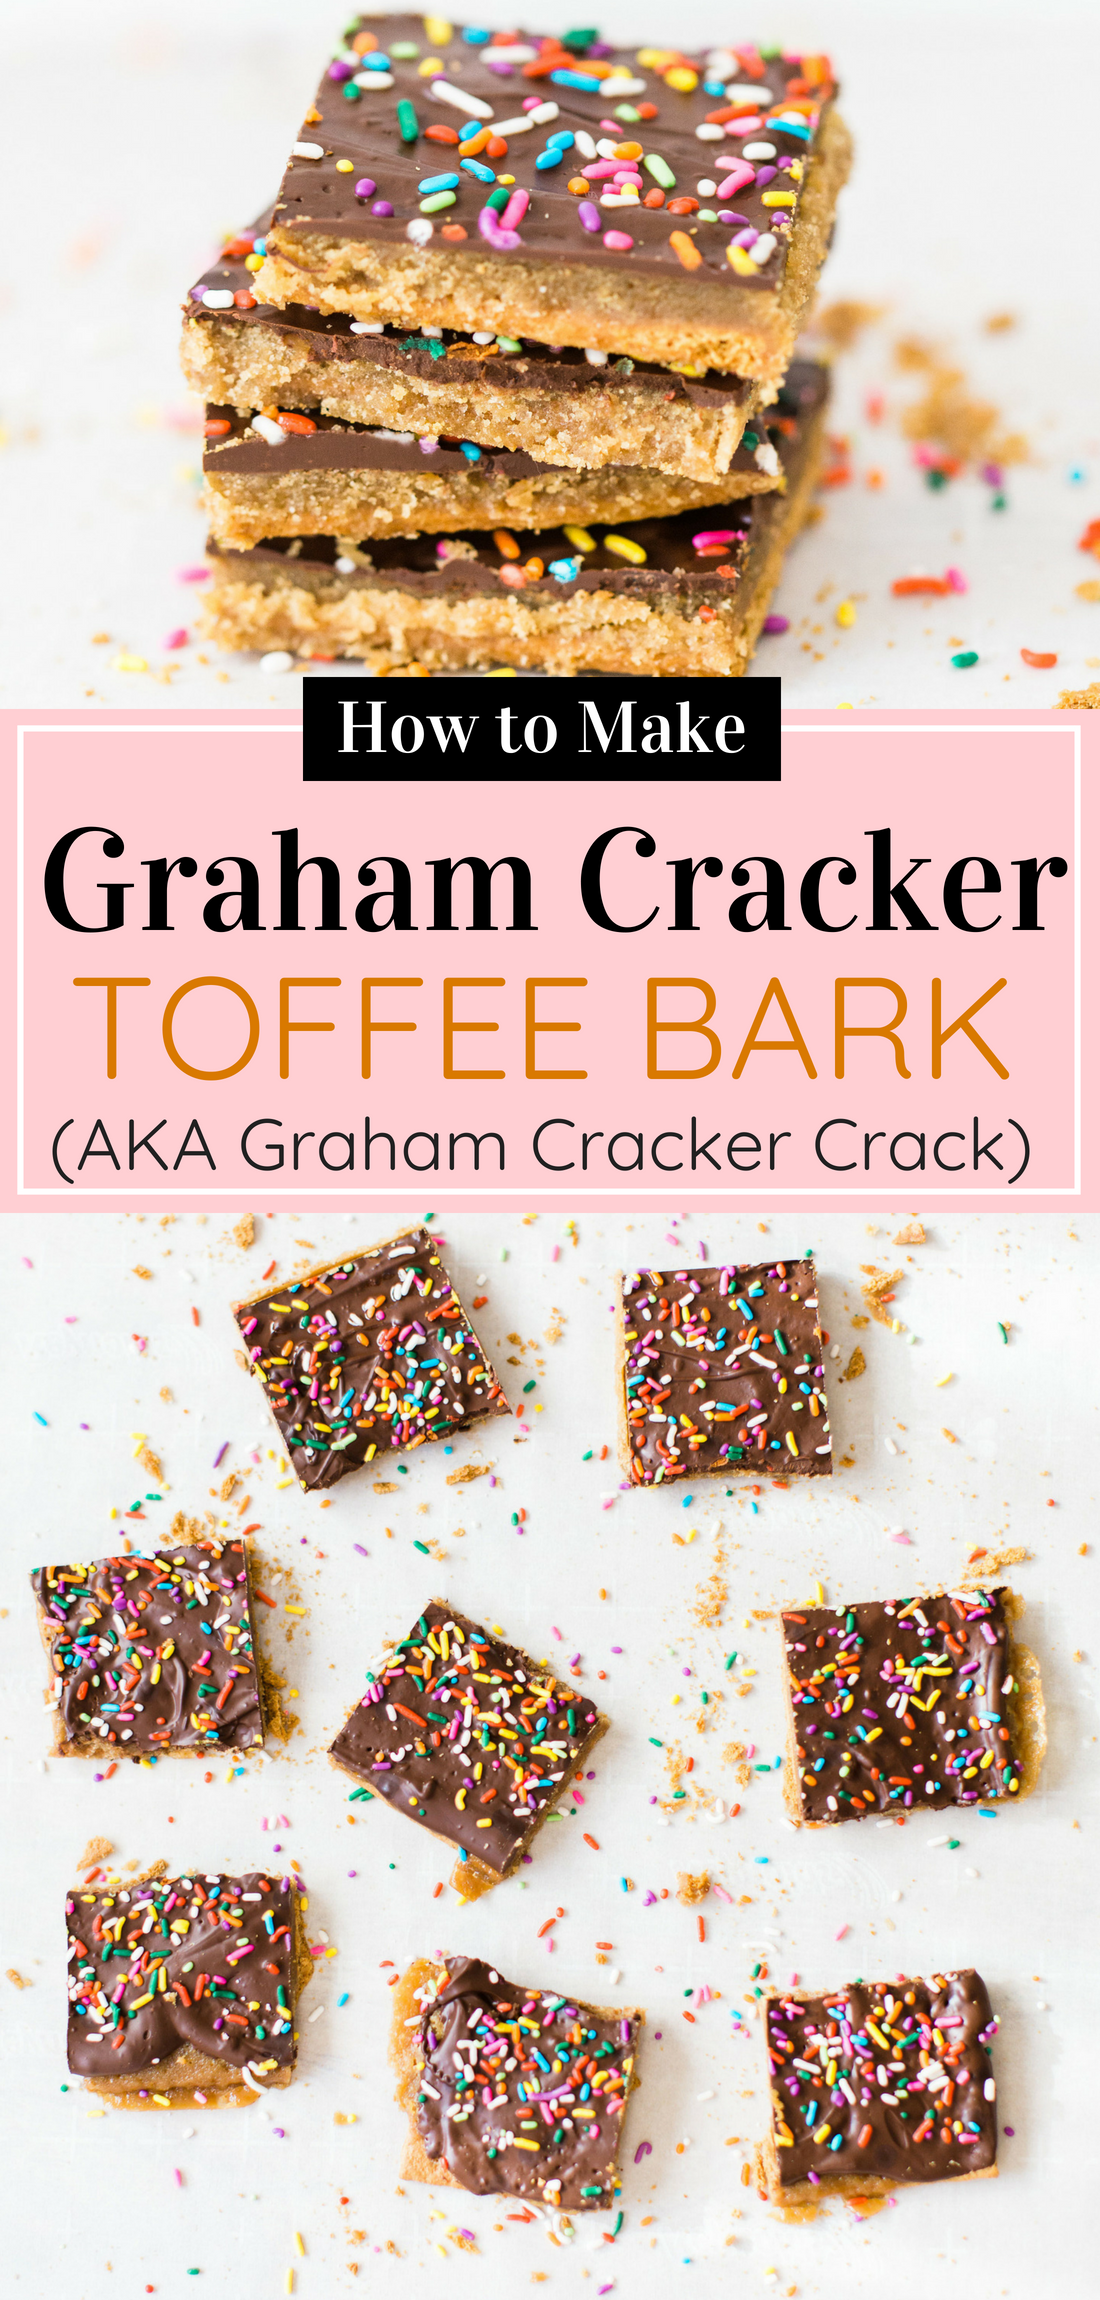 This classic graham cracker toffee bark, a.k.a., graham cracker crack, is a total crowd pleaser, and for good reason. Click through for the recipe. #candybark #grahamcrackerbark #grahamcrackercrack #toffeebark #toffeebarkcrack #diycandy #dessert #dessertbar | glitterinc.com | @glitterinc